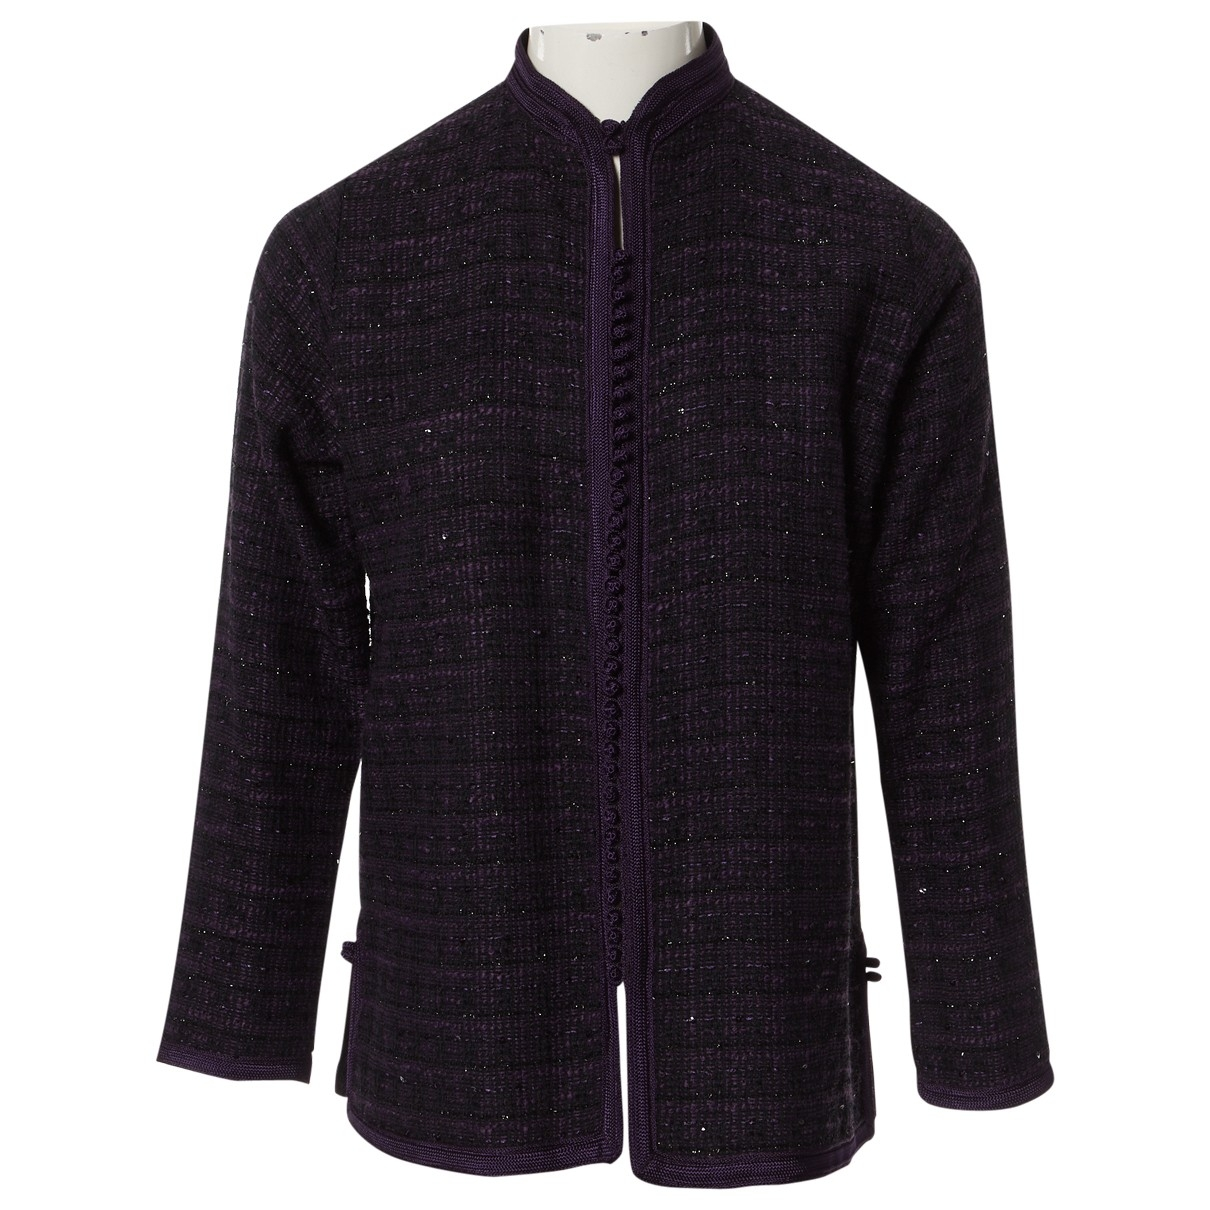 Non Signé / Unsigned \N Black Wool jacket for Women S International